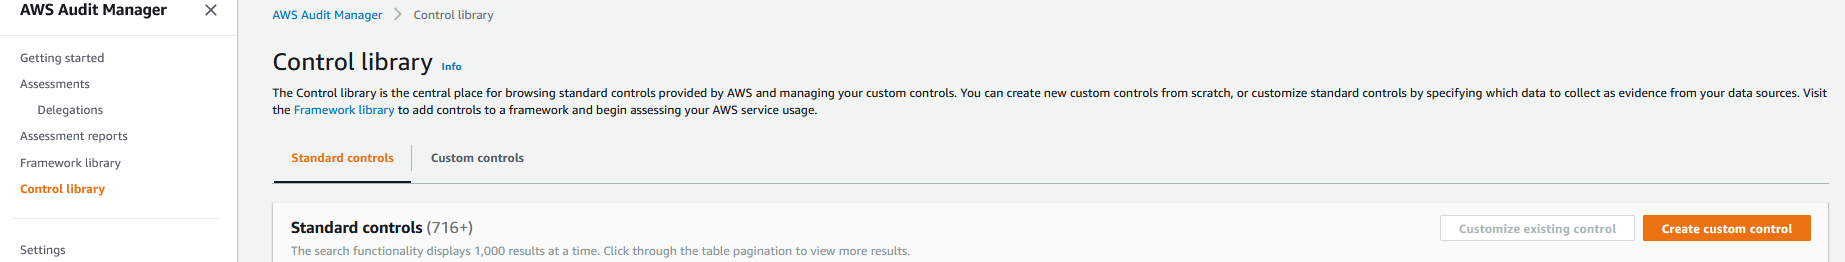 The Control library page has two tabs: Standard controls and Custom controls. It also has two buttons: Customize existing control and Create custom control.